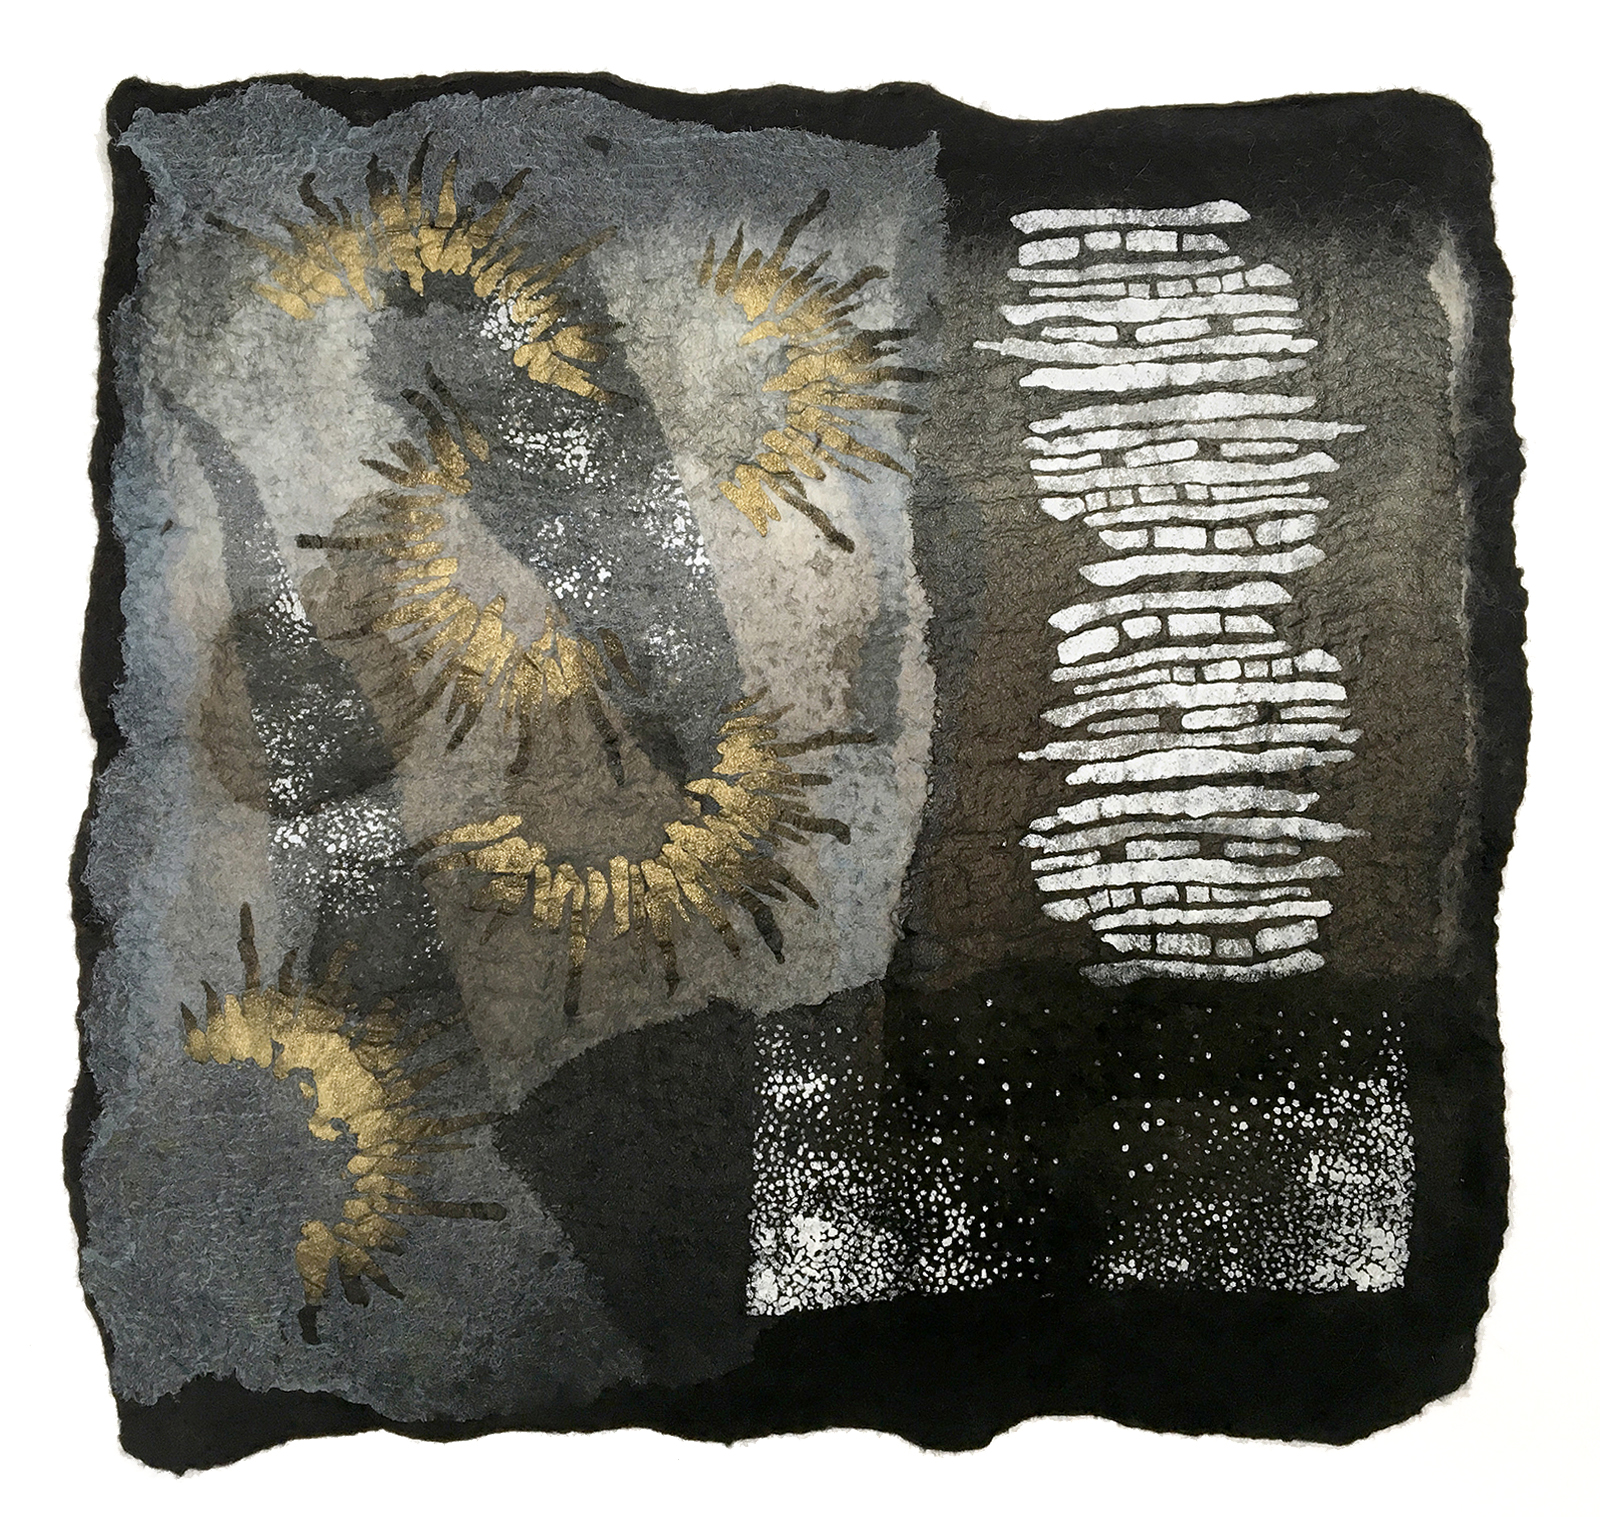 Searching the Night Sky by Melanie West, 2019 wool and hand painted silk